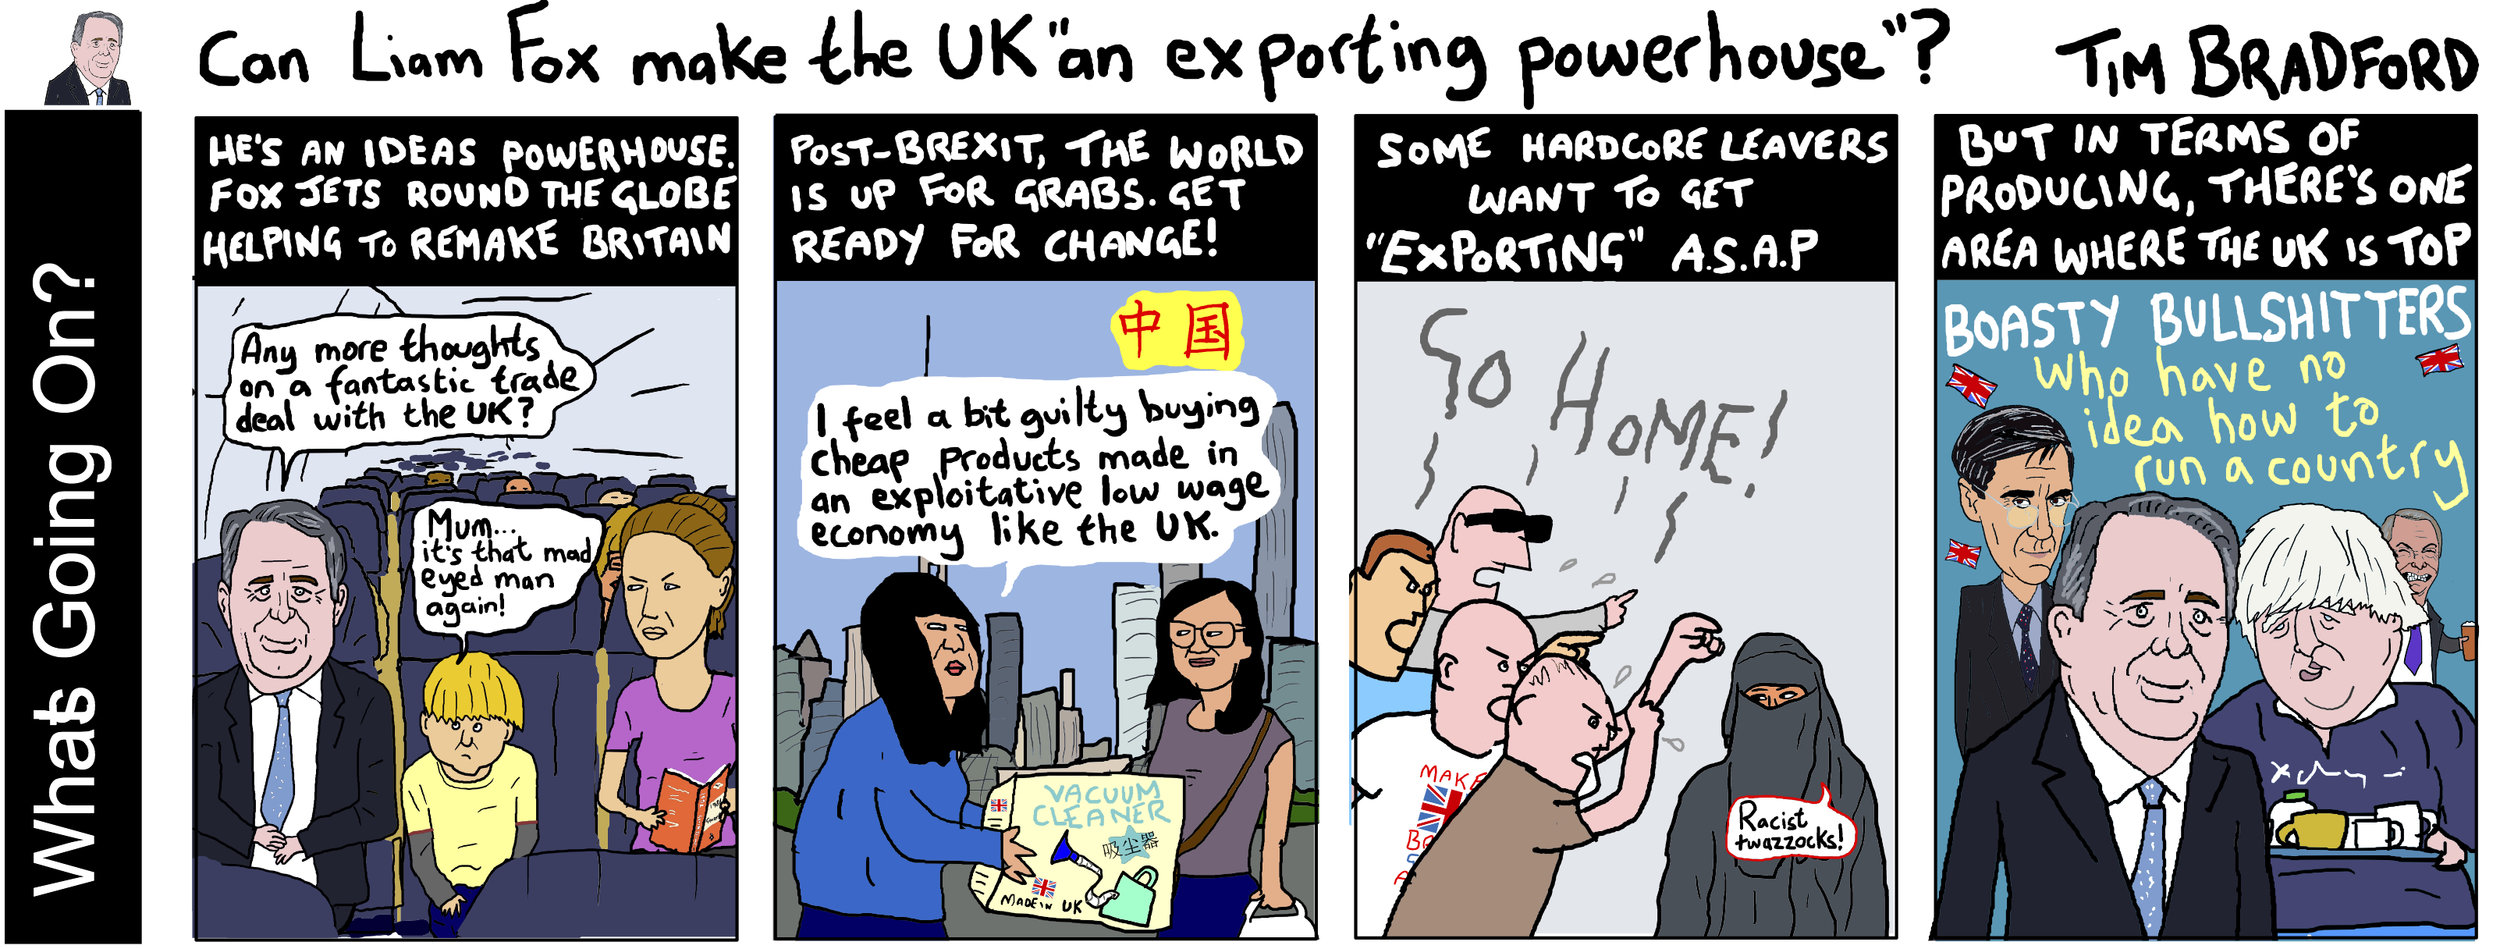 Can Liam Fox make the UK an 'exporting powerhouse'? - 21/08/18